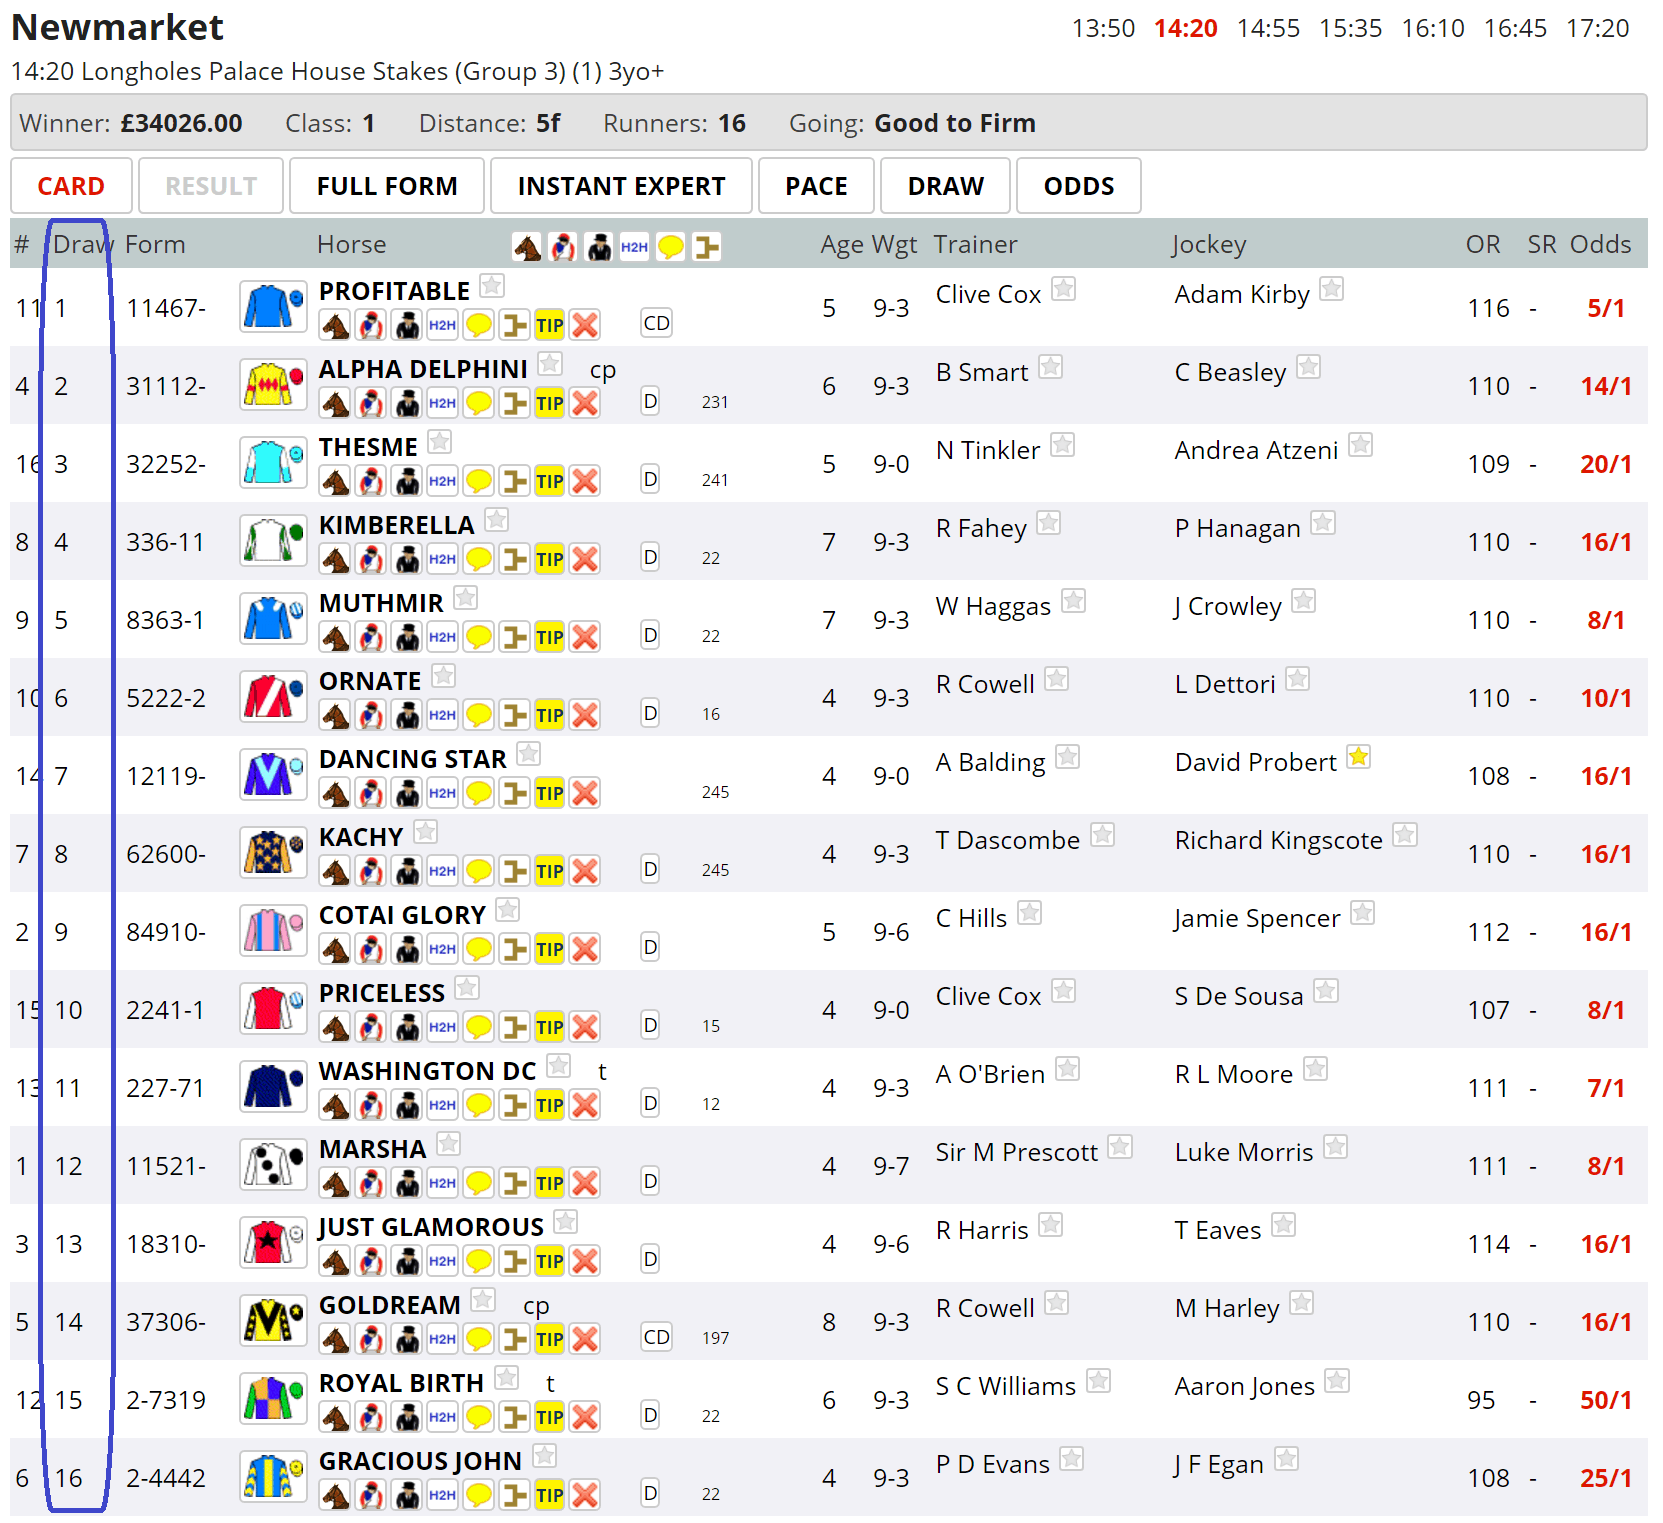 Low to middle is probably going to be favoured in the Palace House Stakes